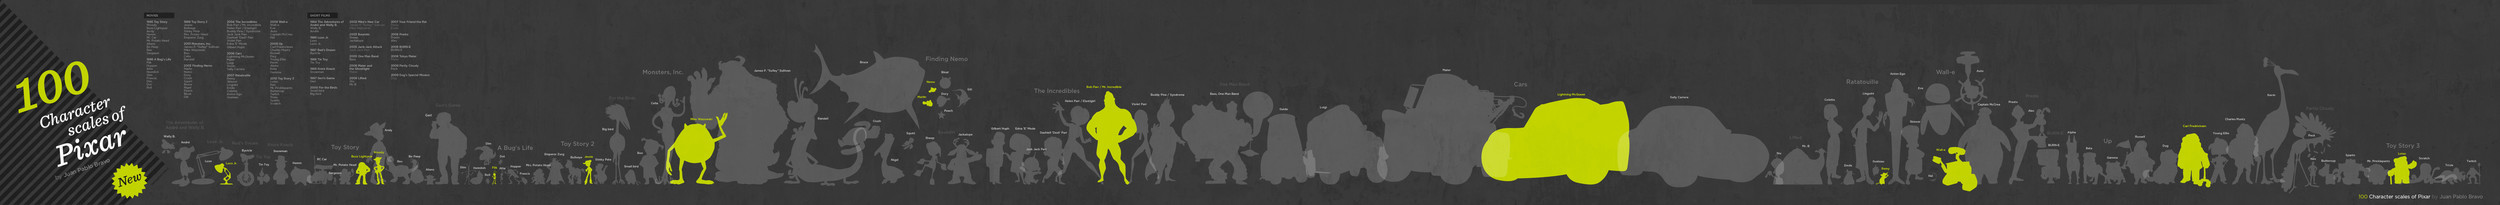 100 Character Scales of Pixar